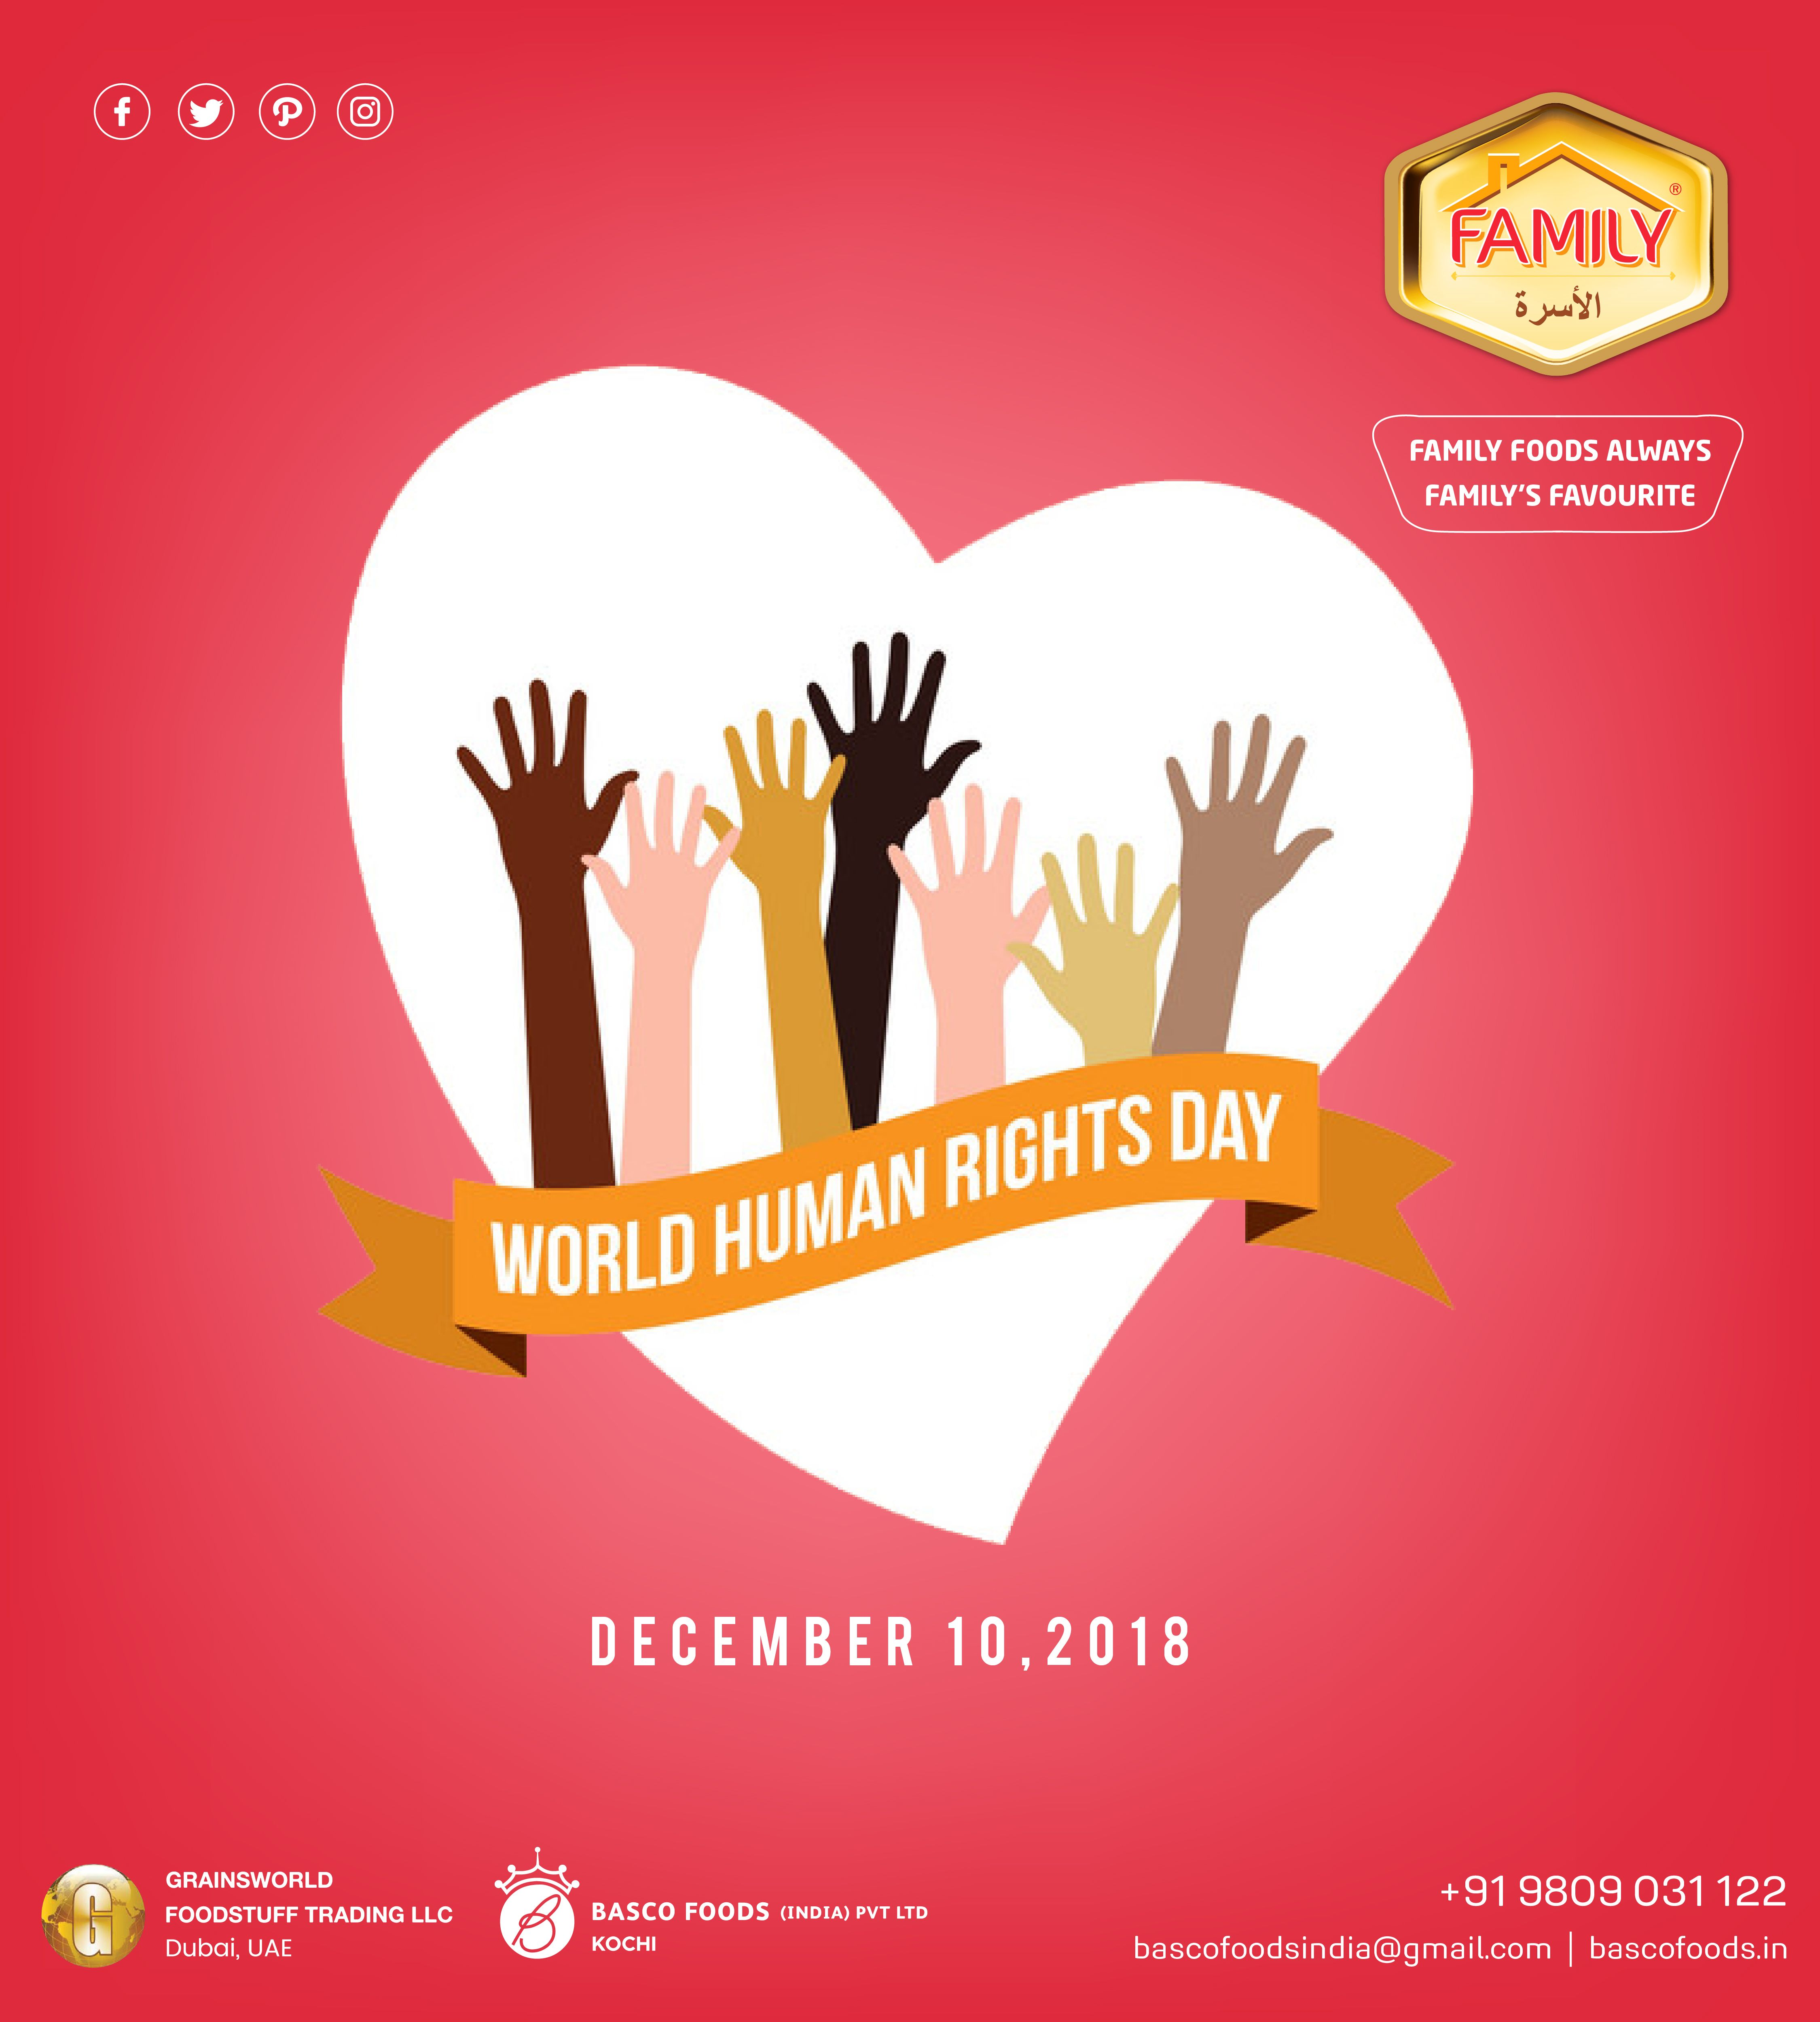 We all deserve the same rights, World Human Rights Day